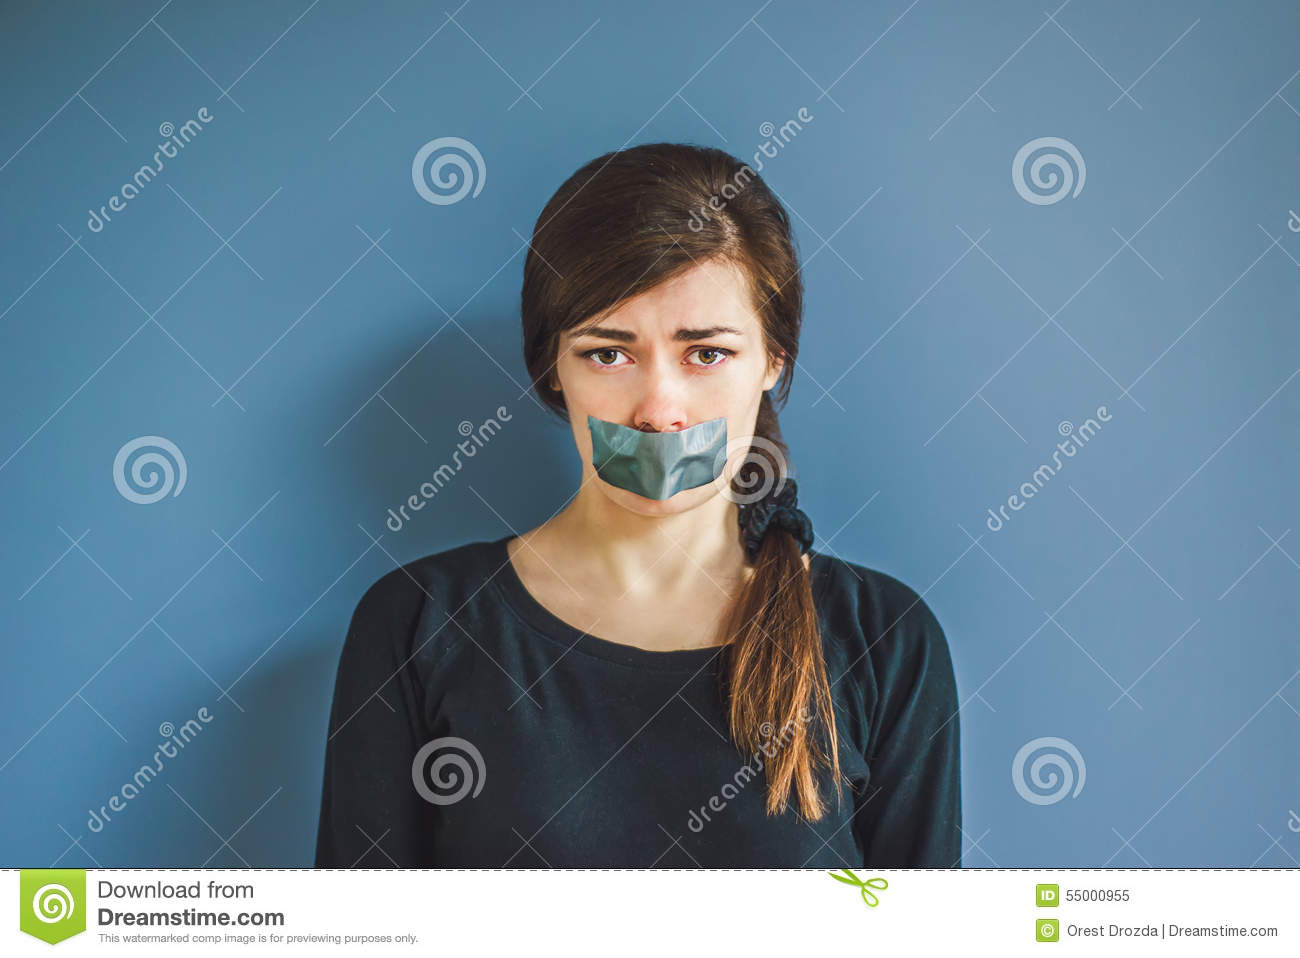 Girl with tape on her mouth